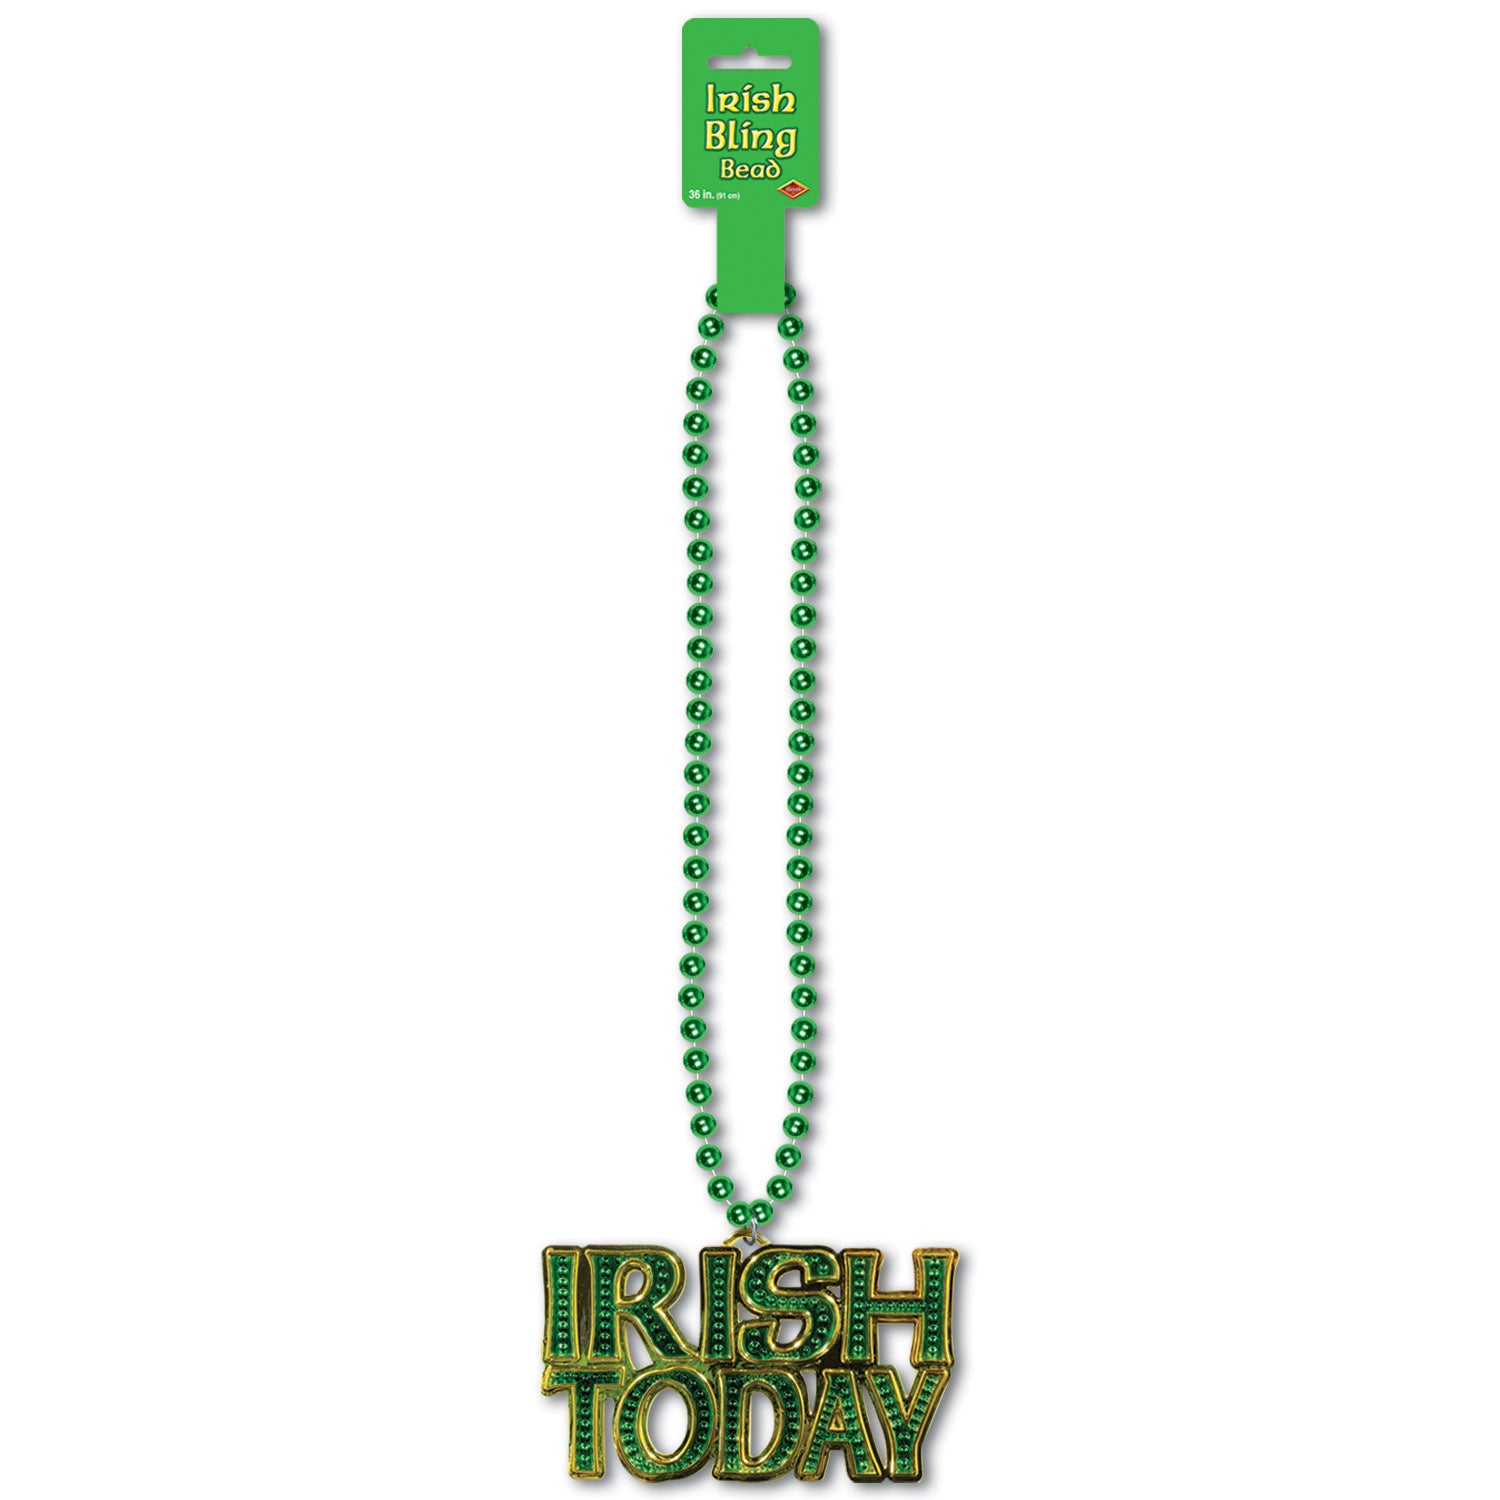 Beads w/Irish Today Medallion by Beistle - St. Patricks Day Theme Decorations